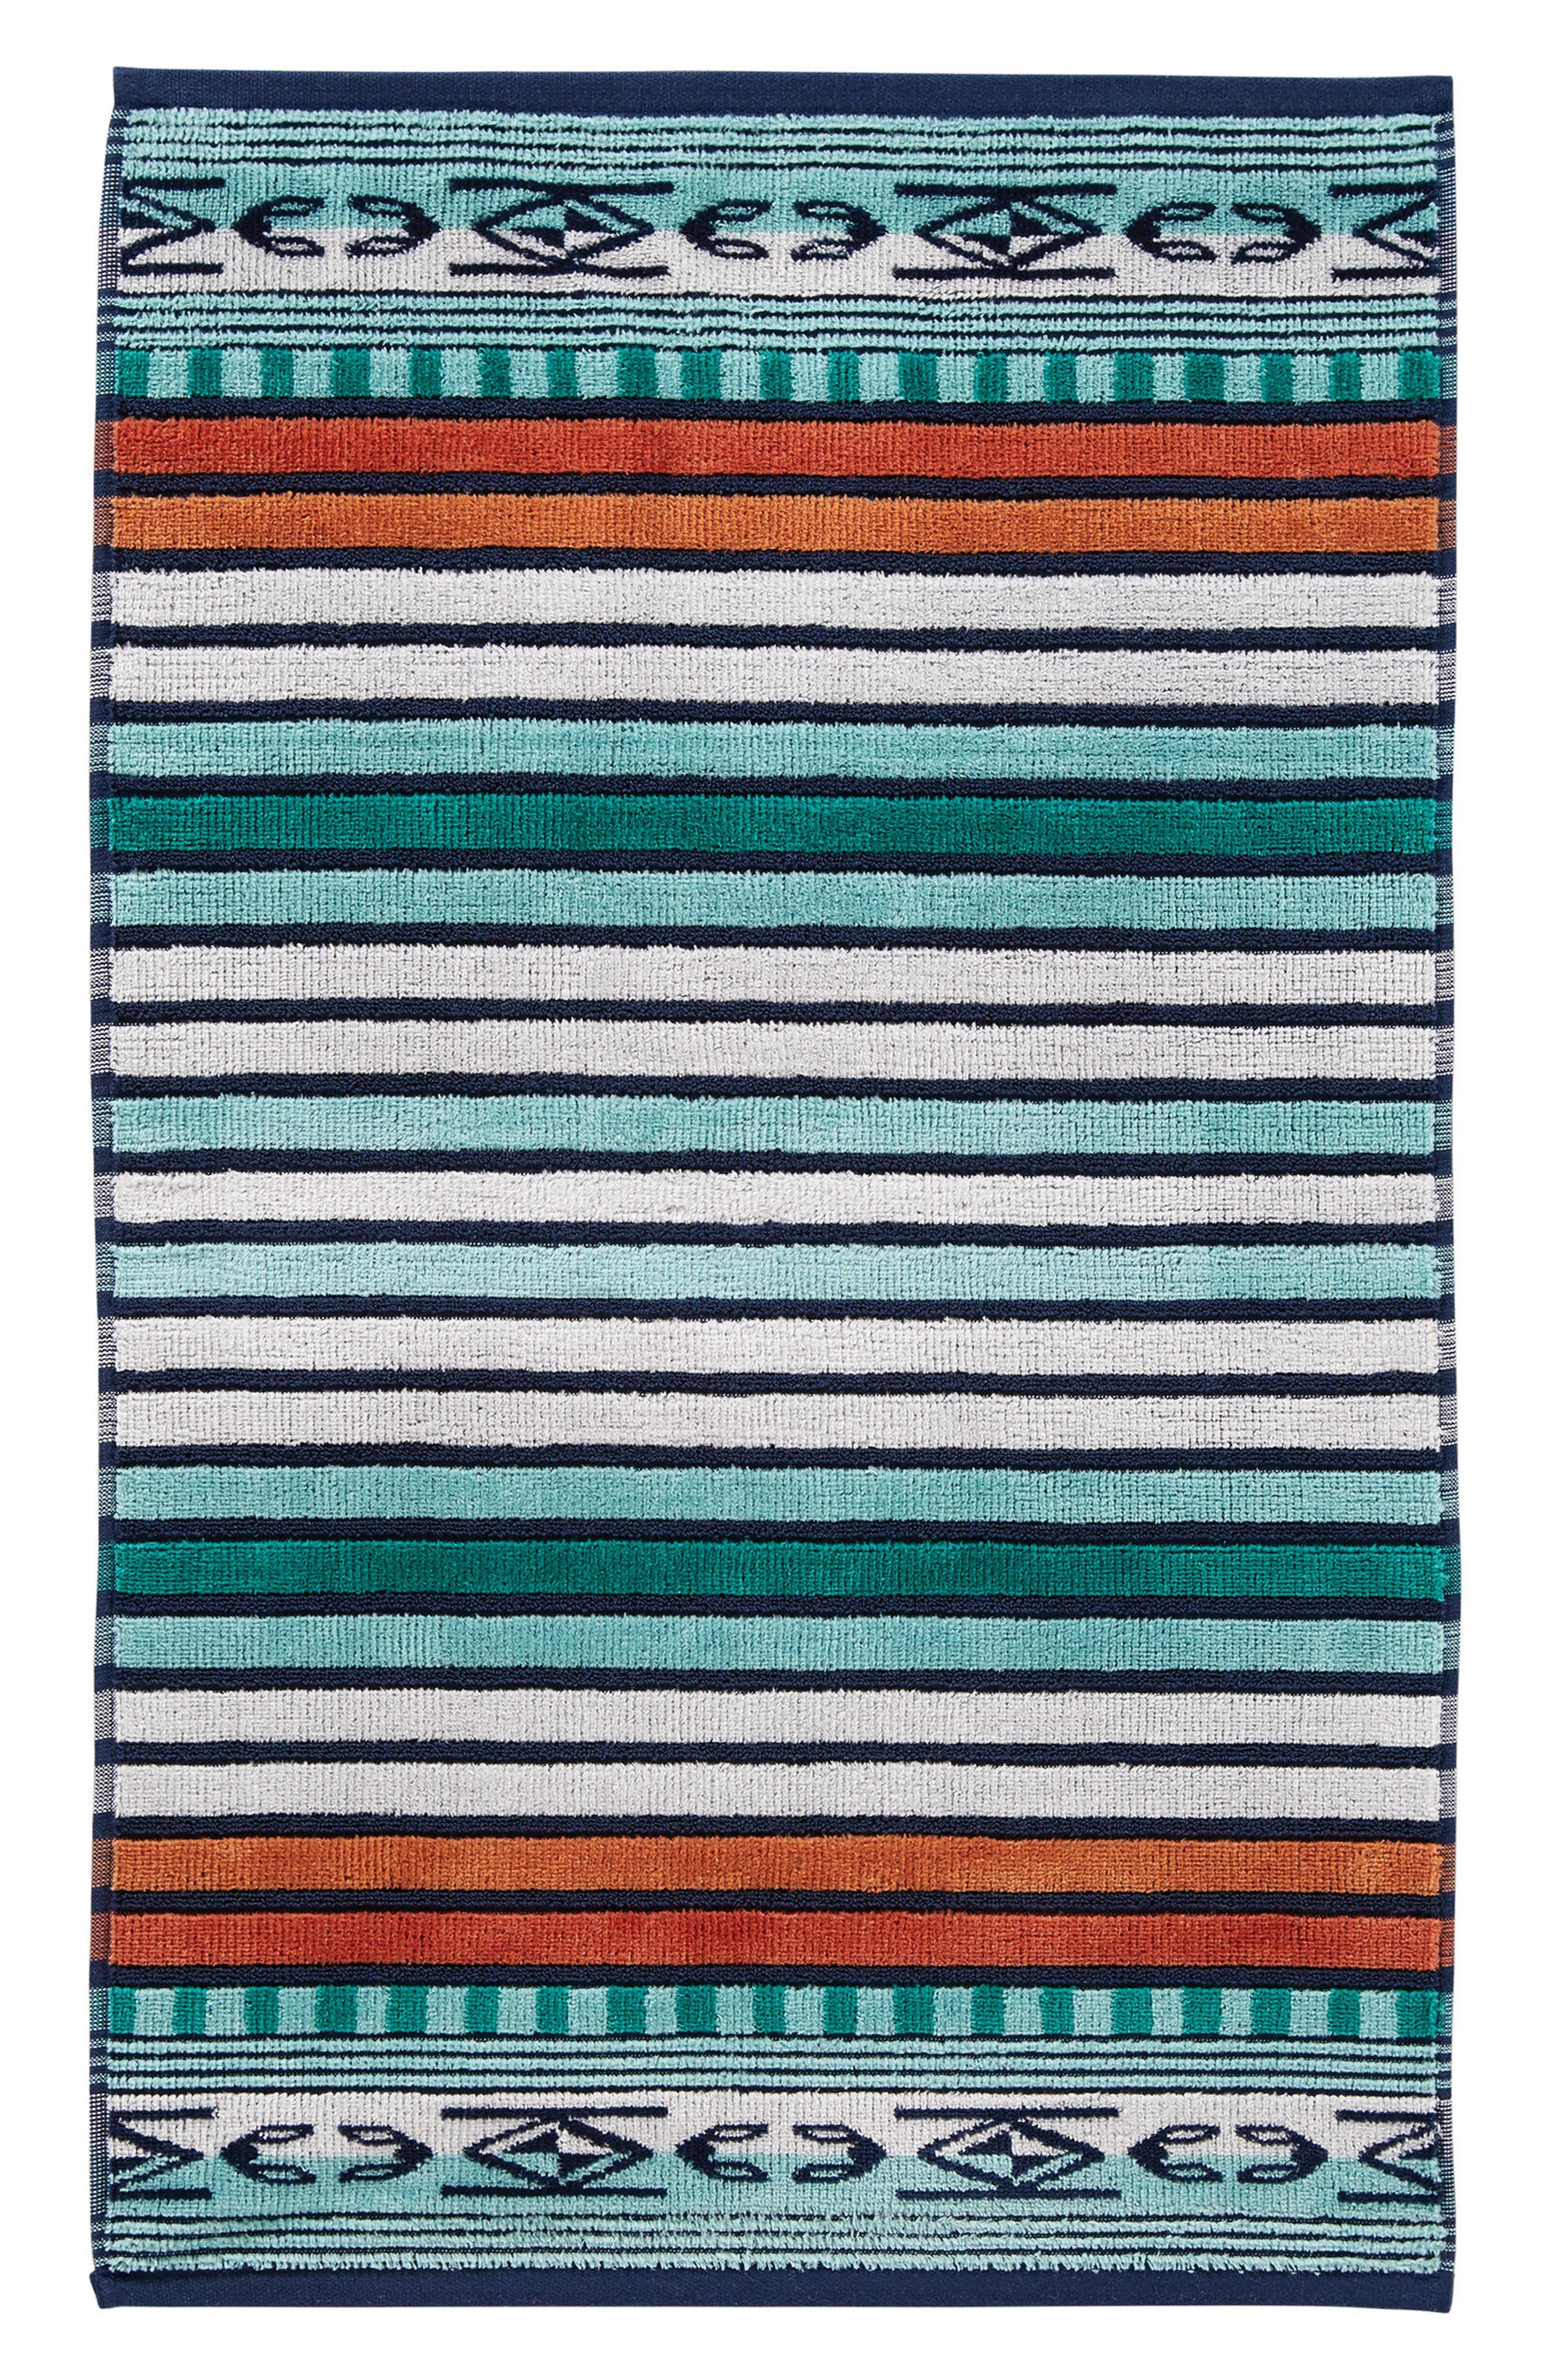 Alternate Image 1 Selected - Pendleton Chimayo Jacquard Hand Towel